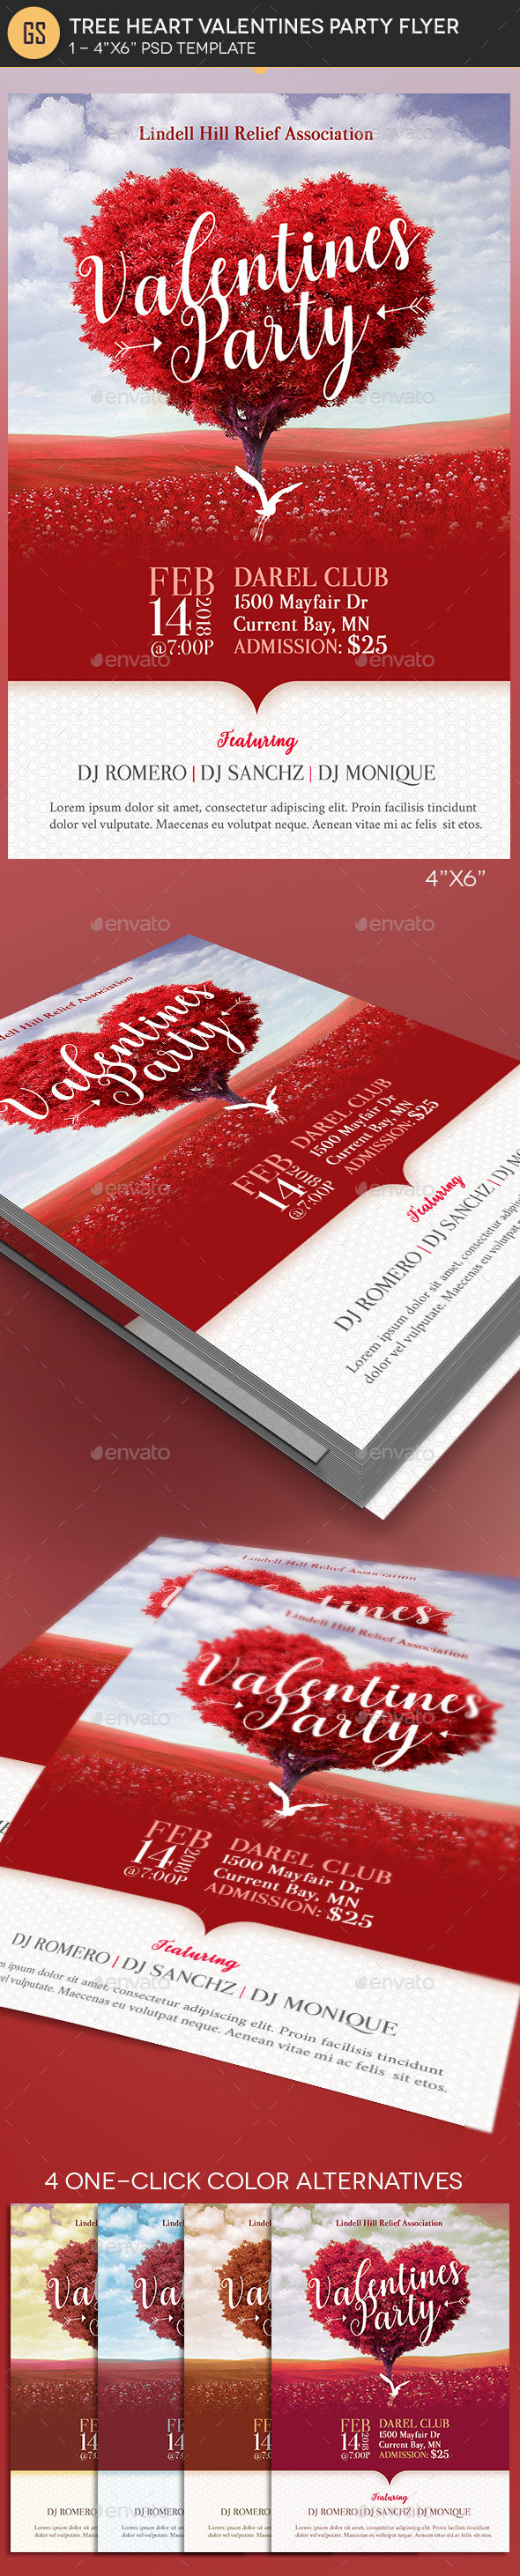 Tree Heart Valentines Party Flyer Template - Holidays Events